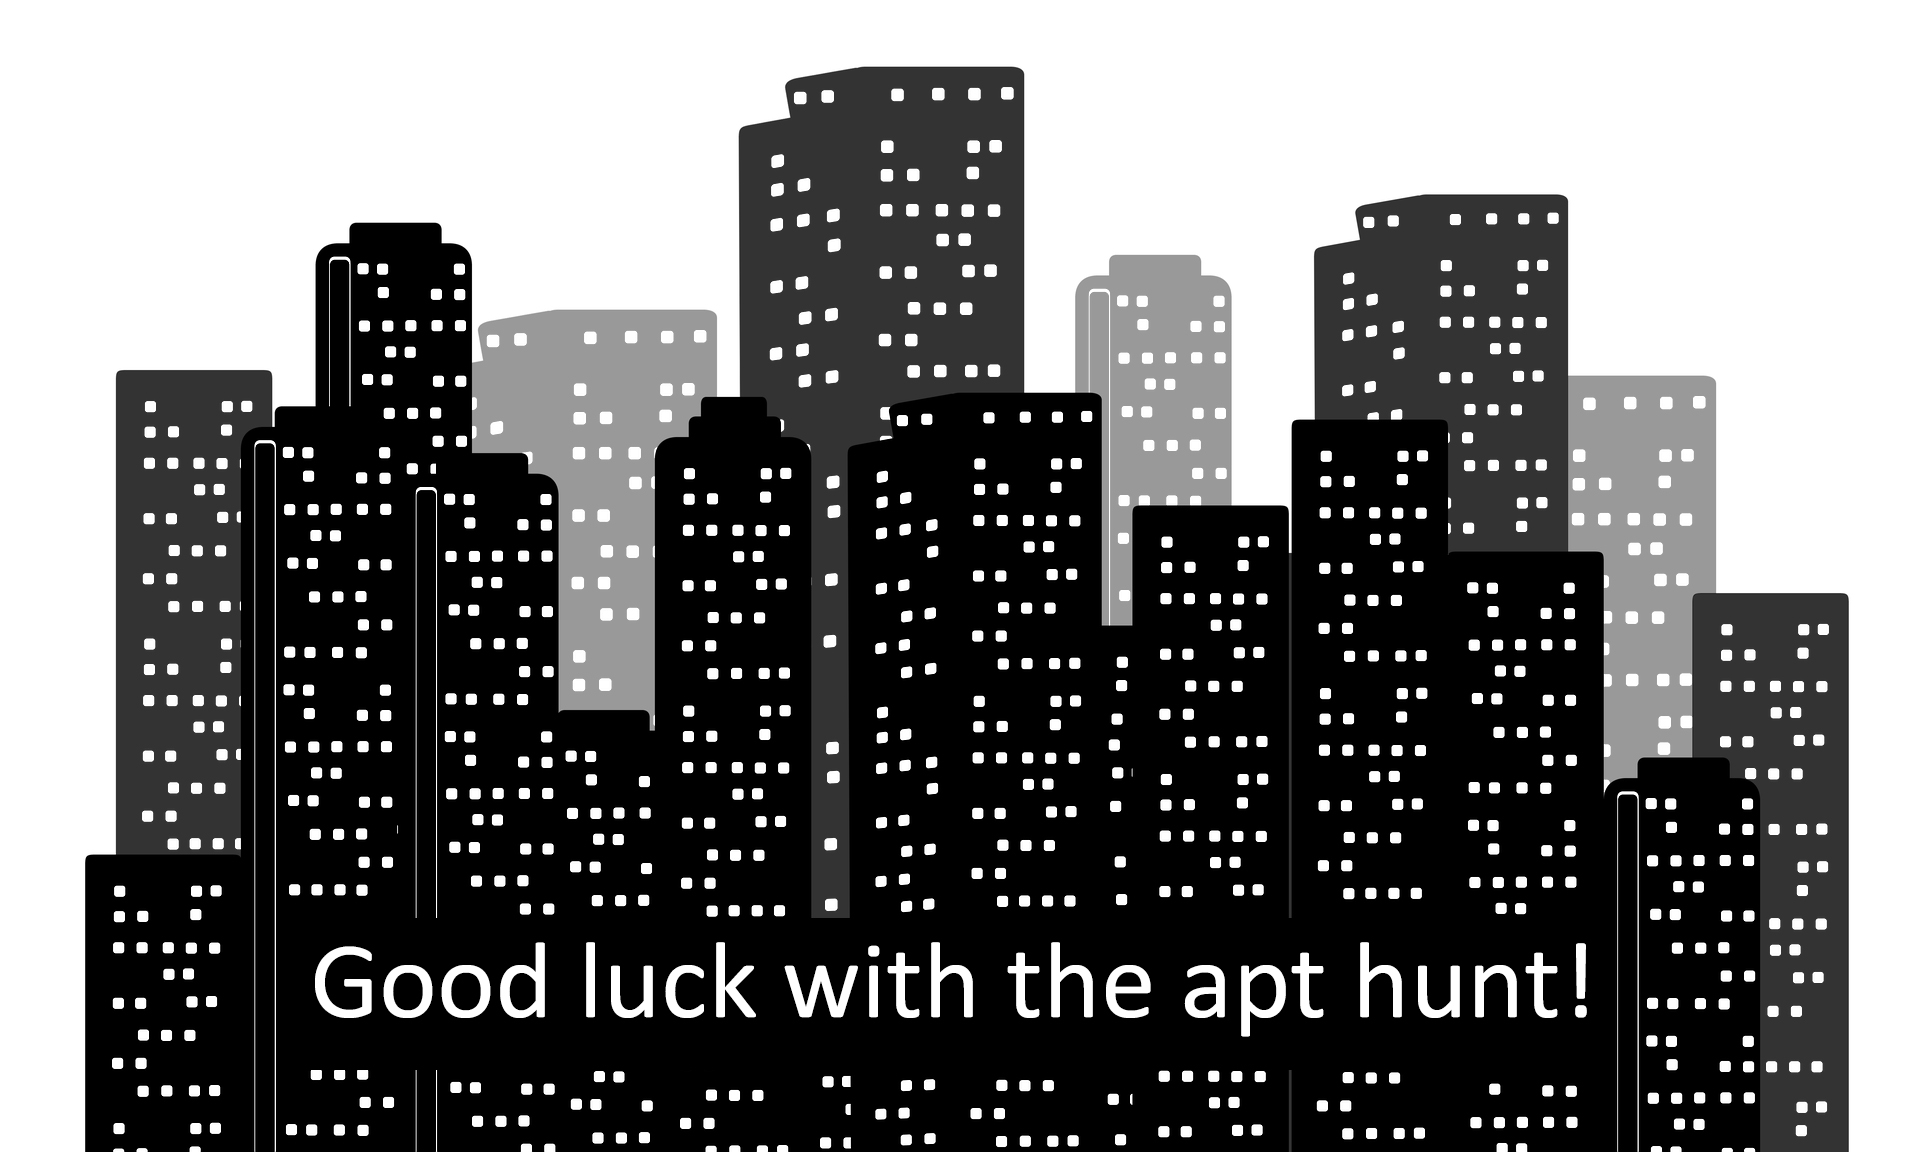 Good luck with the apt hunt!